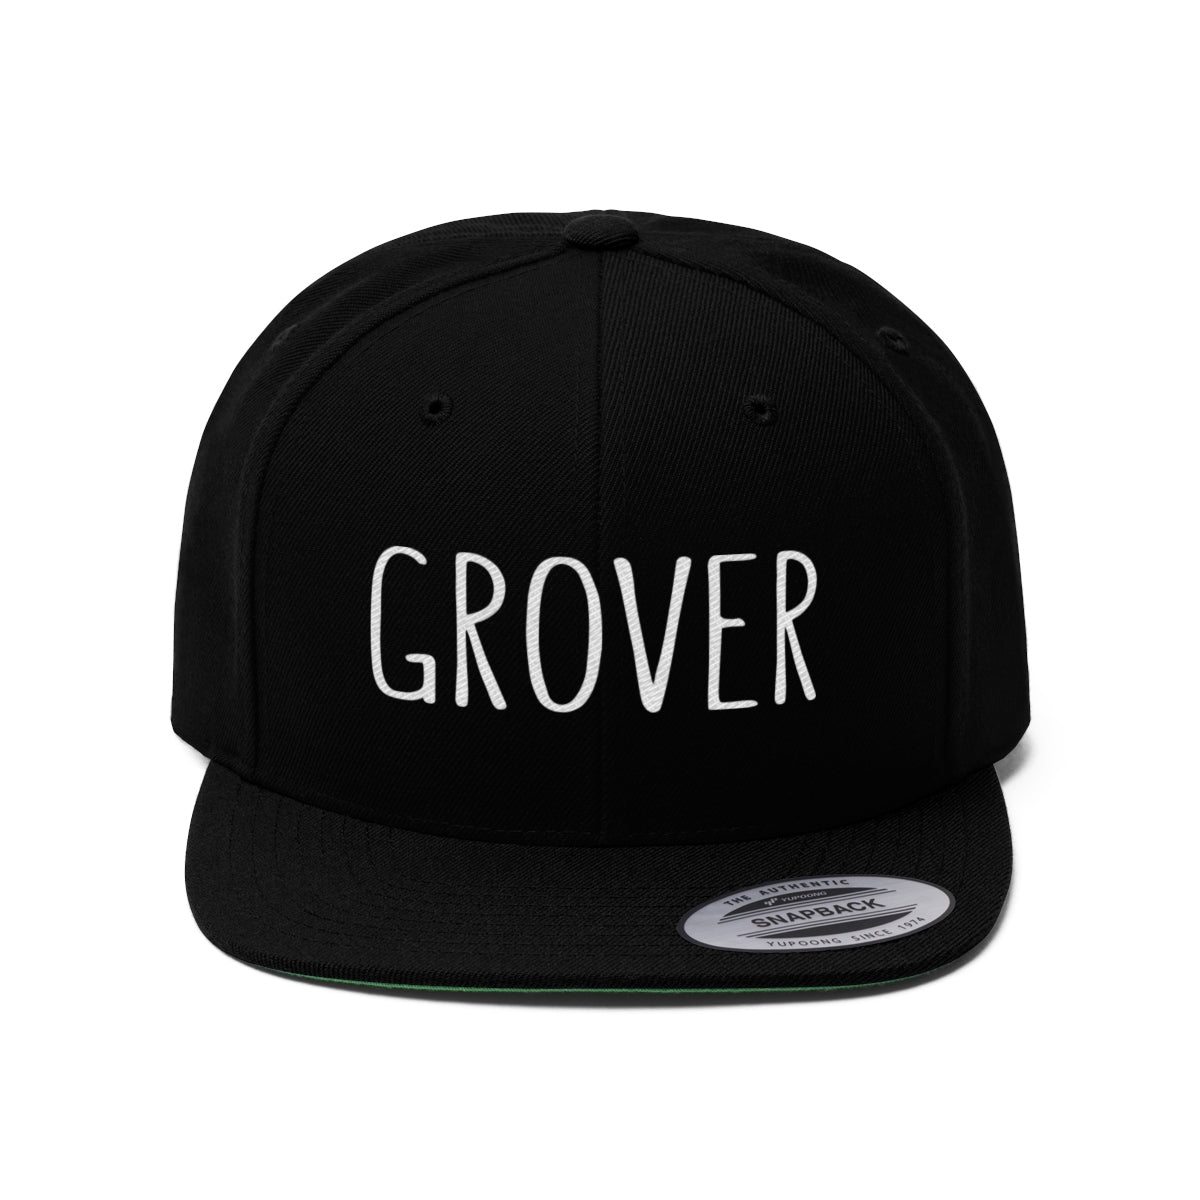 Grover Flat Bill Hat - GoGannon Designs